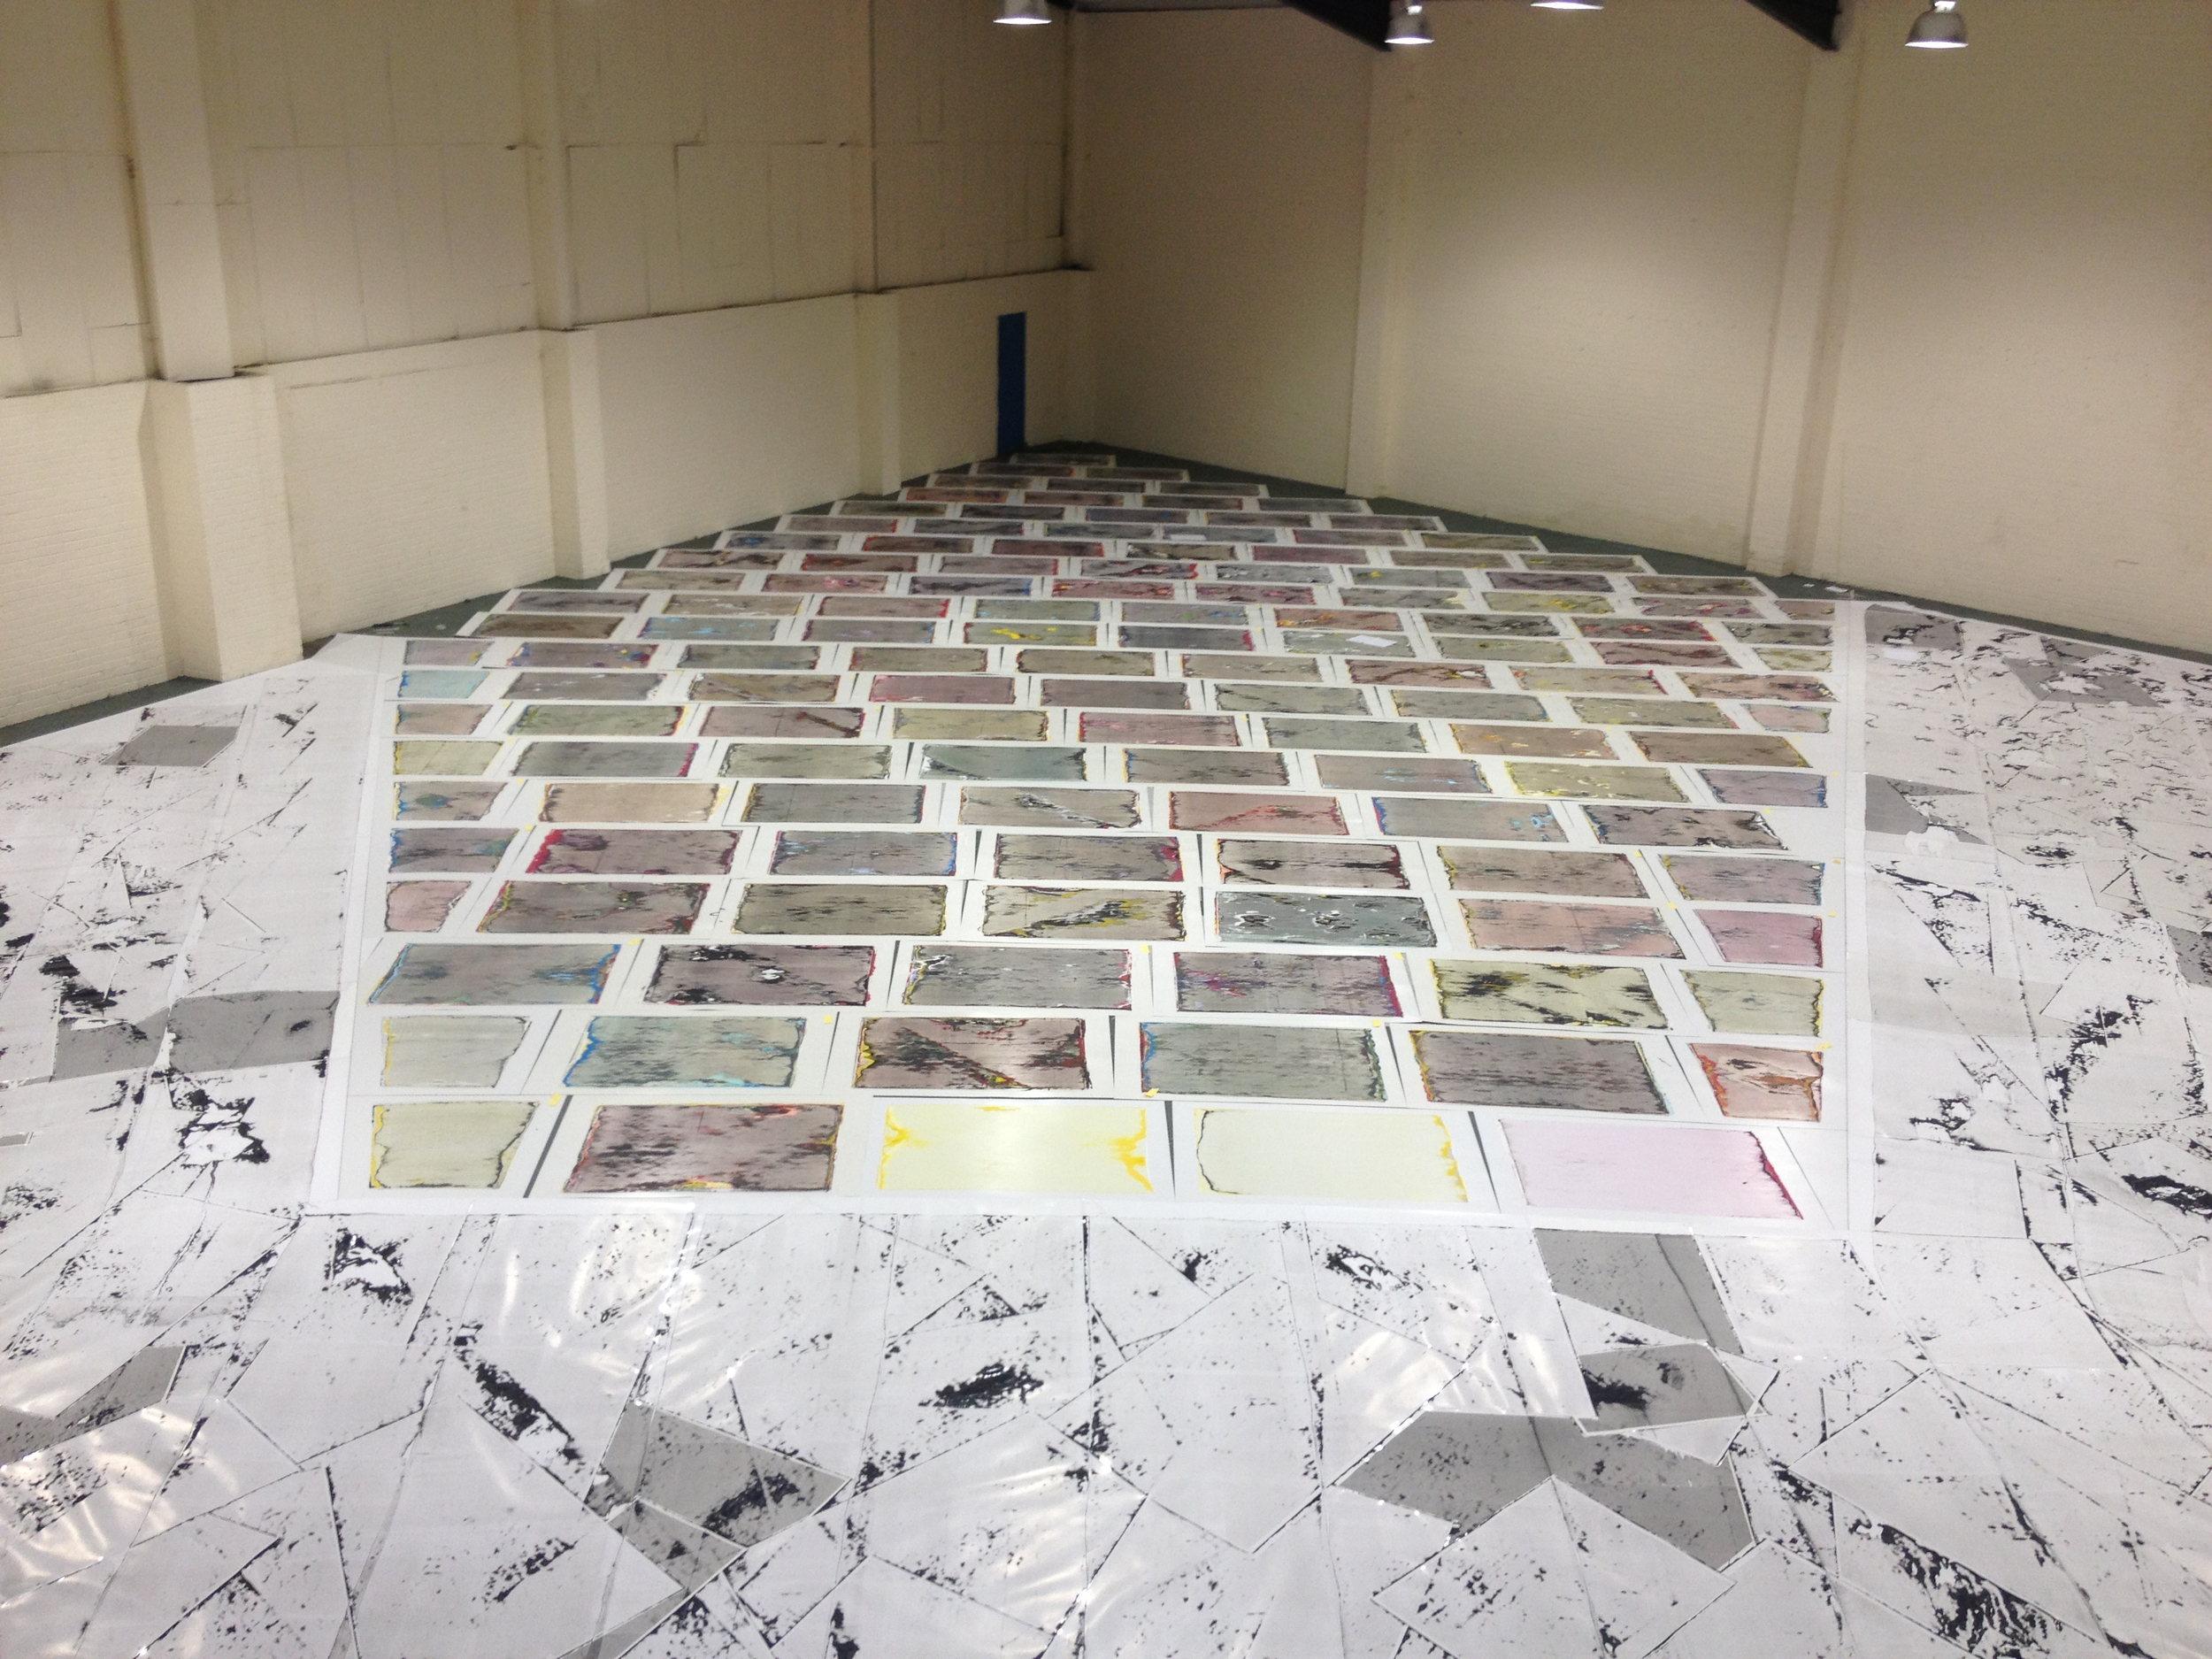 Performance Publishing: Regent Trading Estate (2013), Installation view